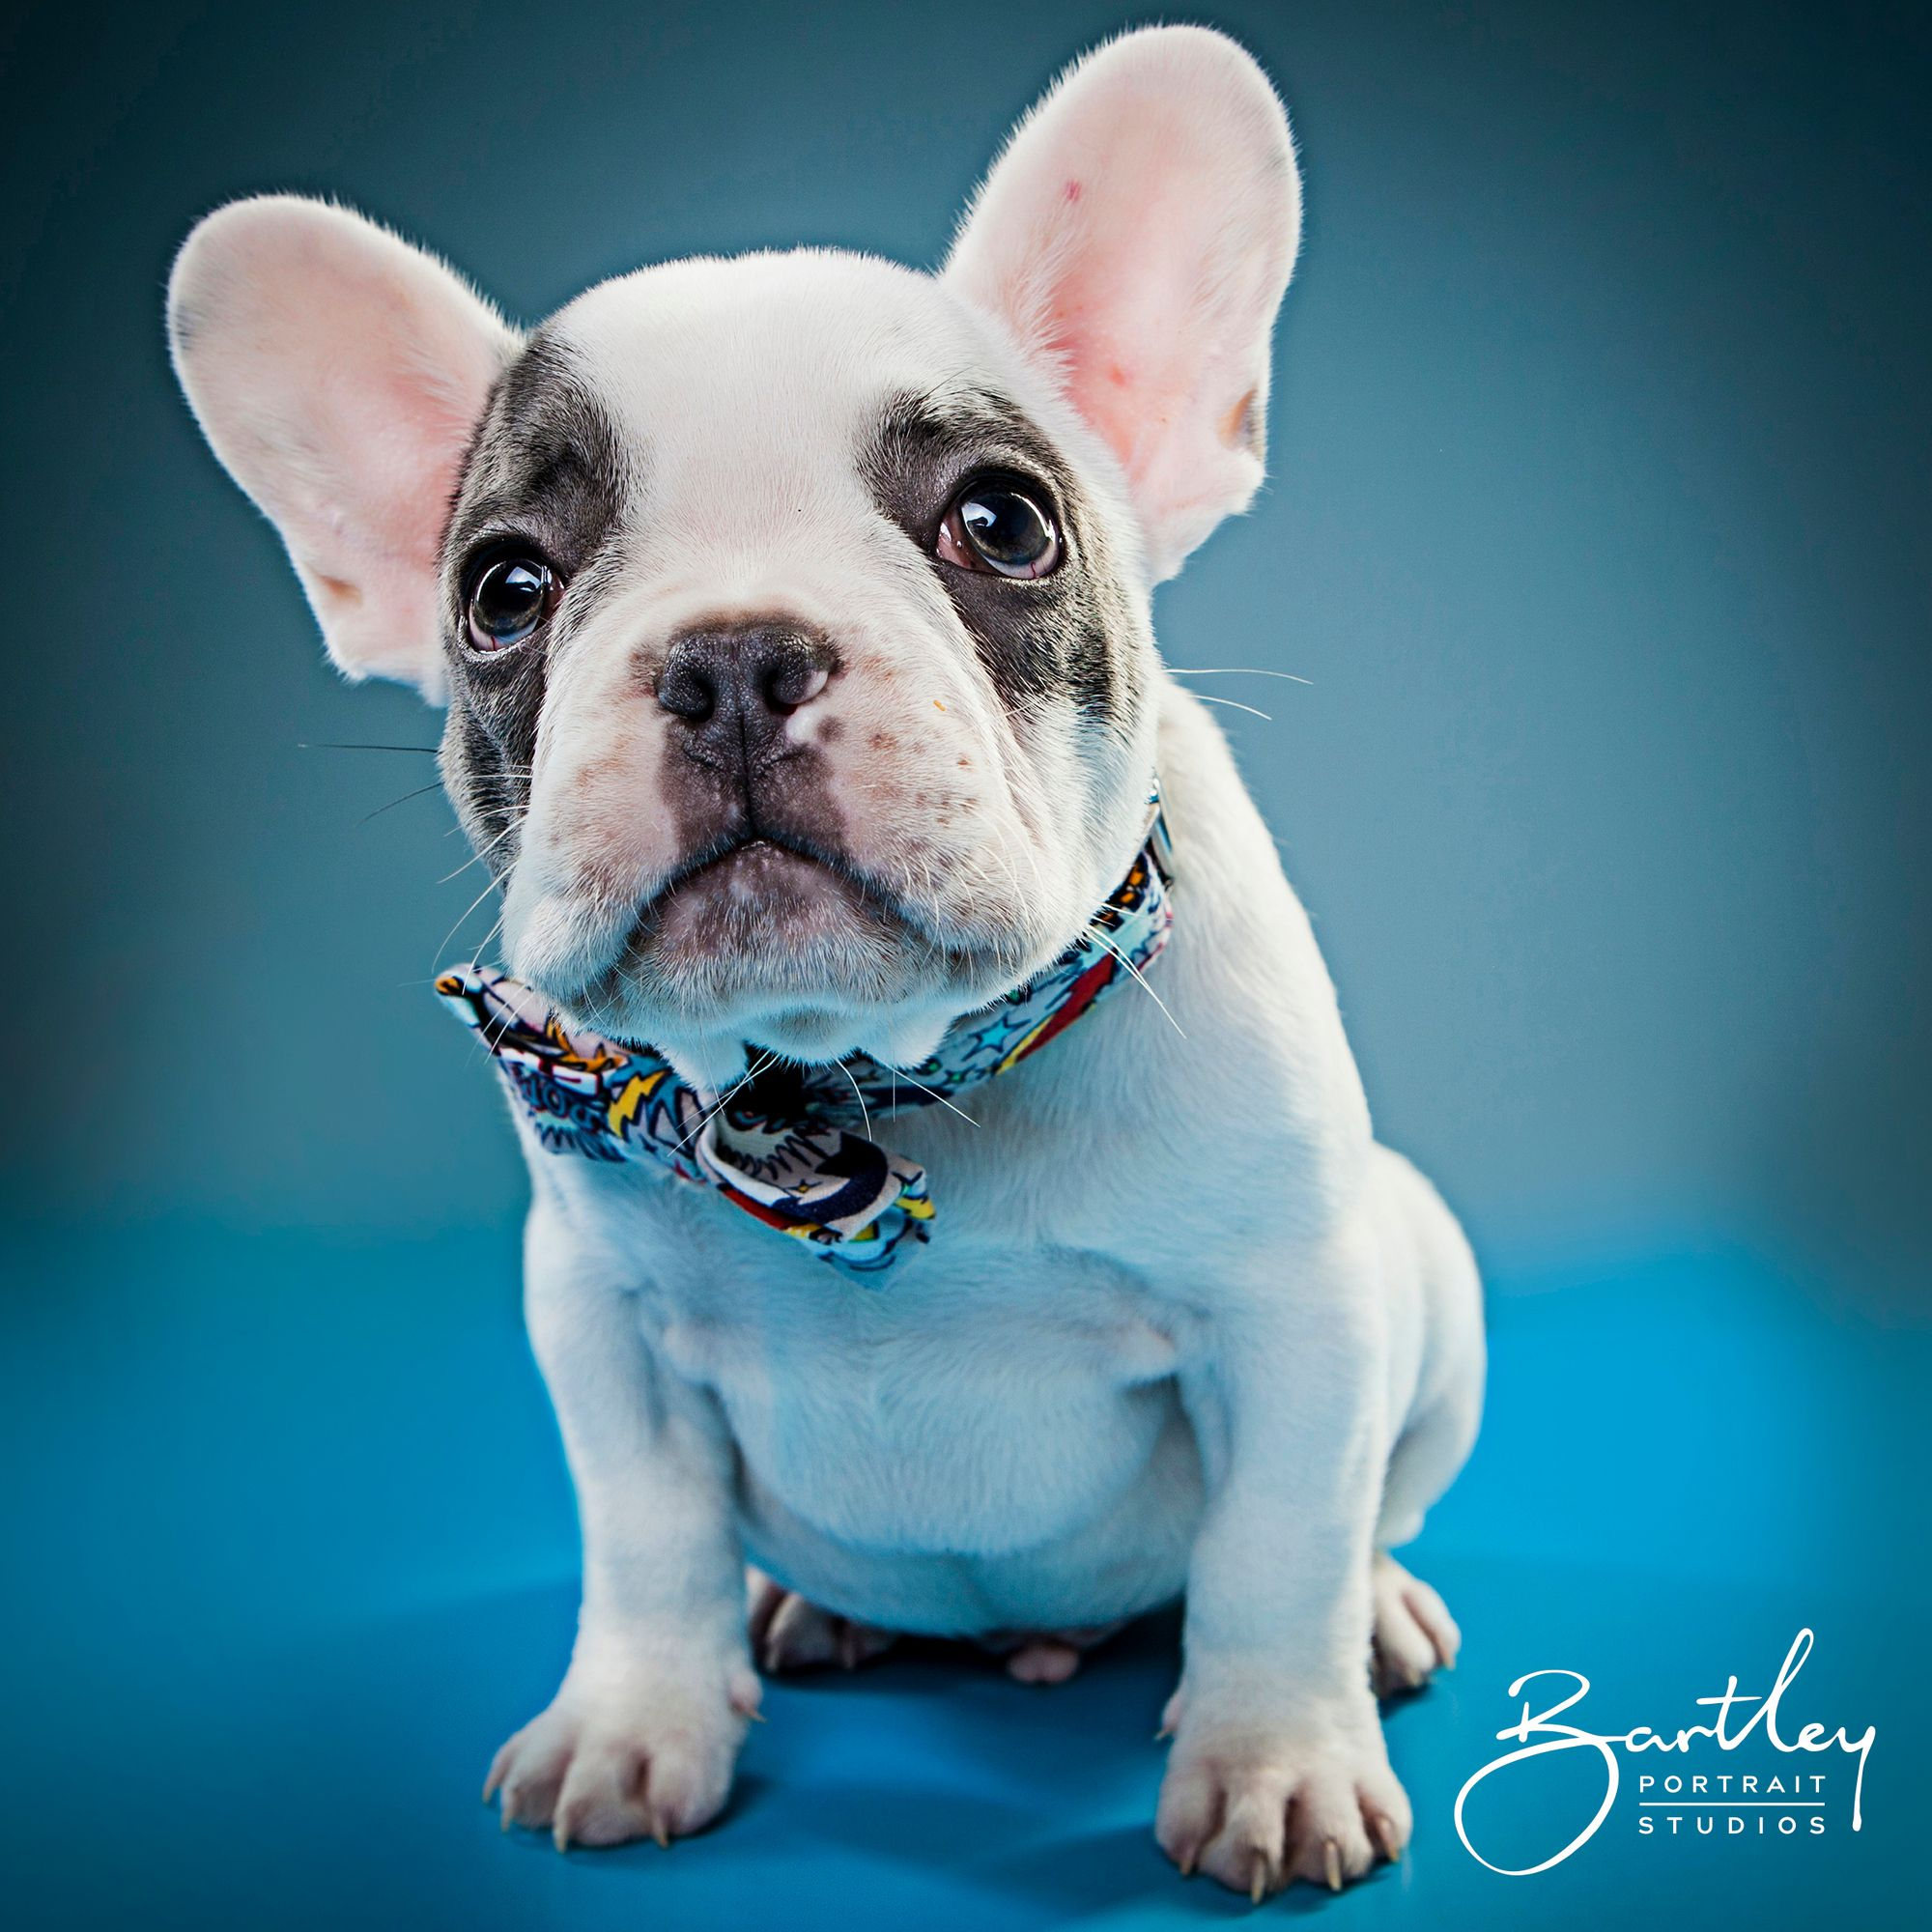 Look At This Cutie Patootie Puppy Dog Portrait Photography